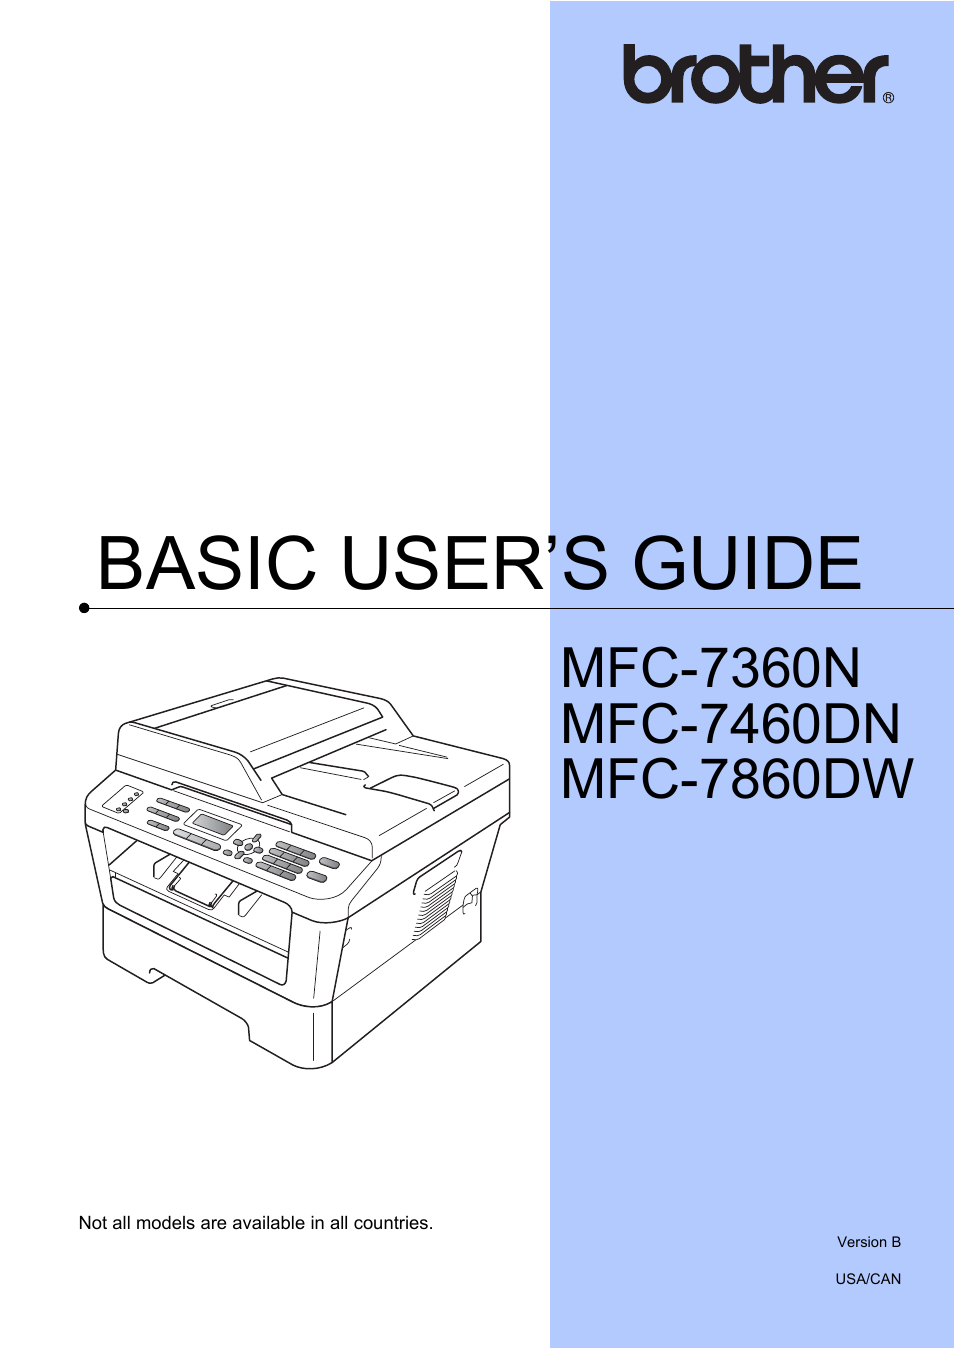 brother mfc 7860dw user manual 162 pages also for mfc 7360n rh manualsdir com Brother 7860DW Driver Windows 8 Brother Printer MFC-7860DW Driver